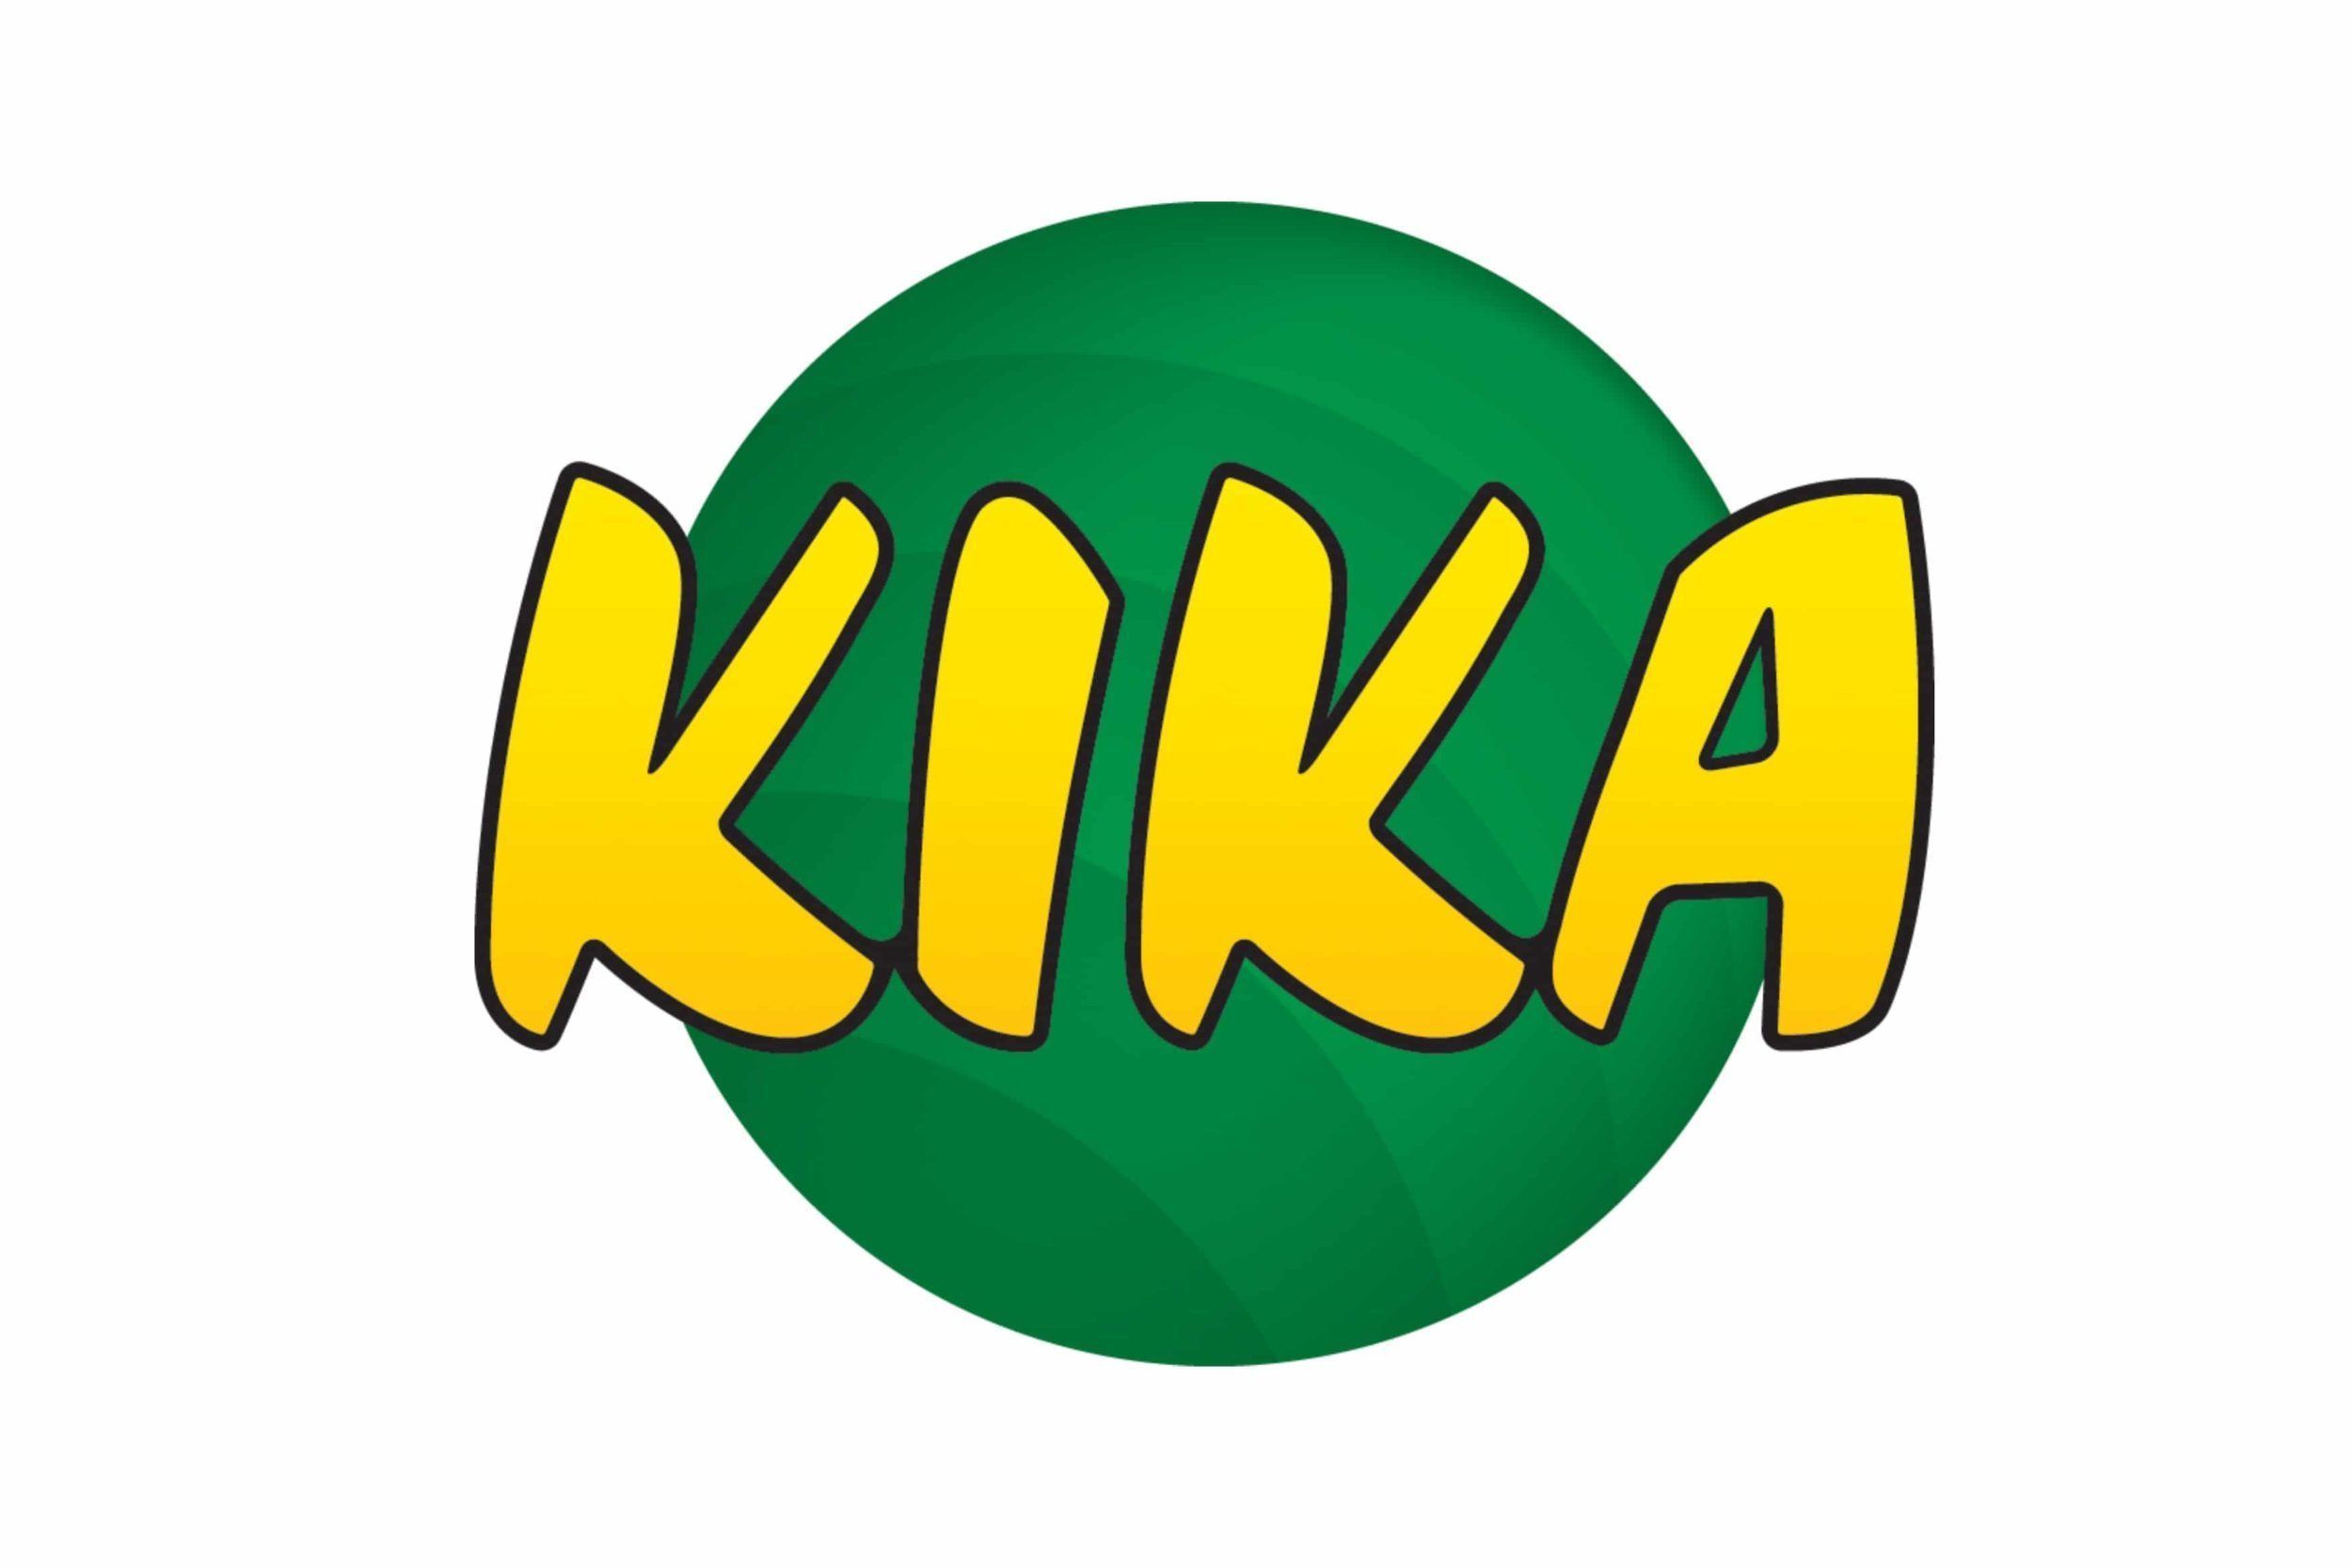 Kika Com Kika T1 Mall Of Tallinn